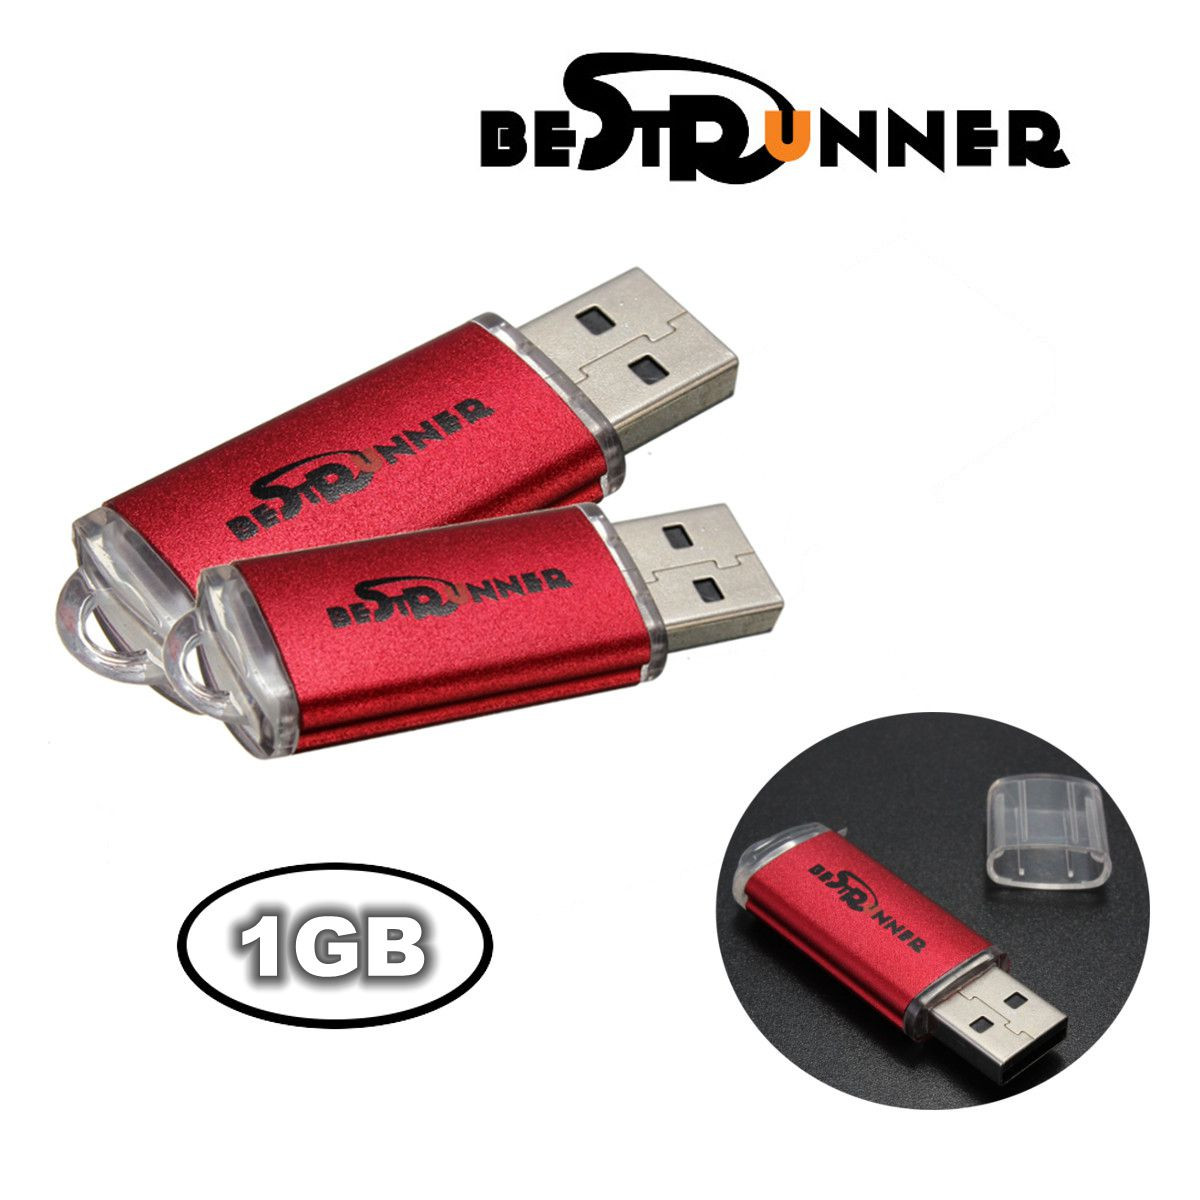 2PCS BESTRUNNER 1GB USB 2.0 Flash Drive Pen Bright Memory Stick Thumb Disk Gift Idea